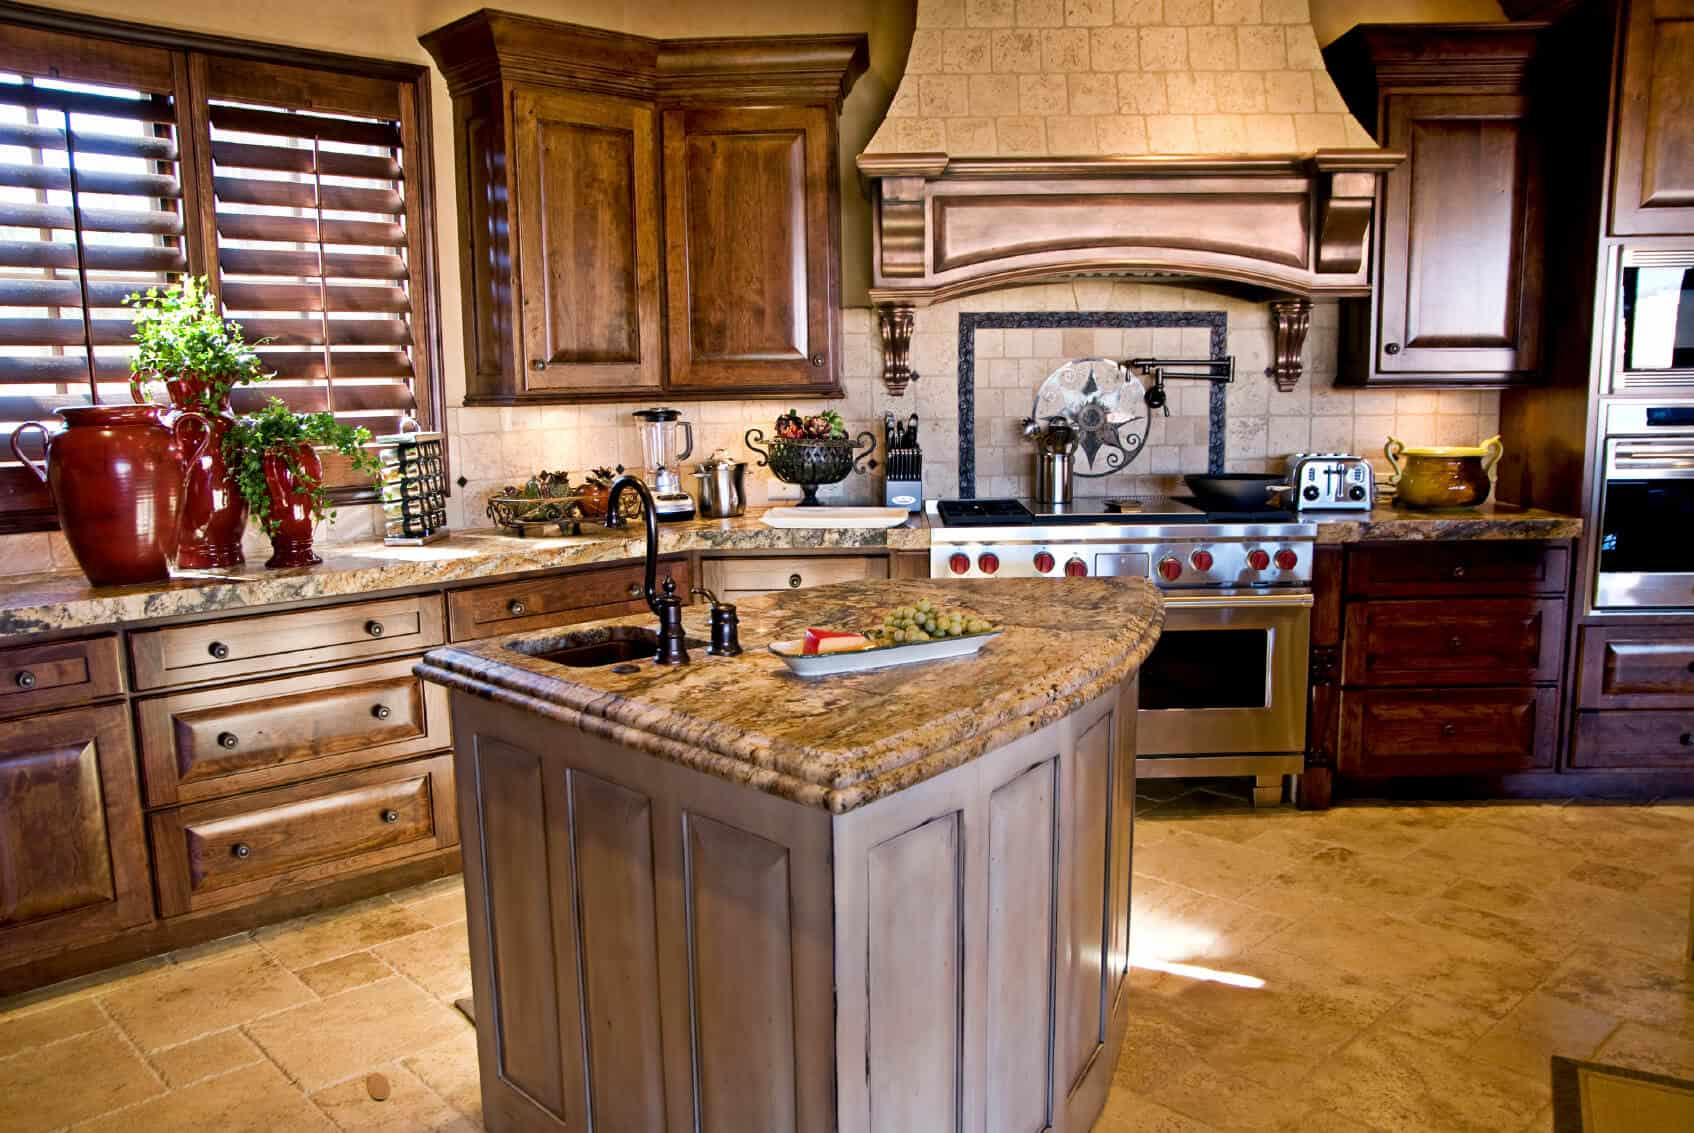 This small kitchen with a single wall kitchen with raised panel cabinets, a central island, and tile flooring.